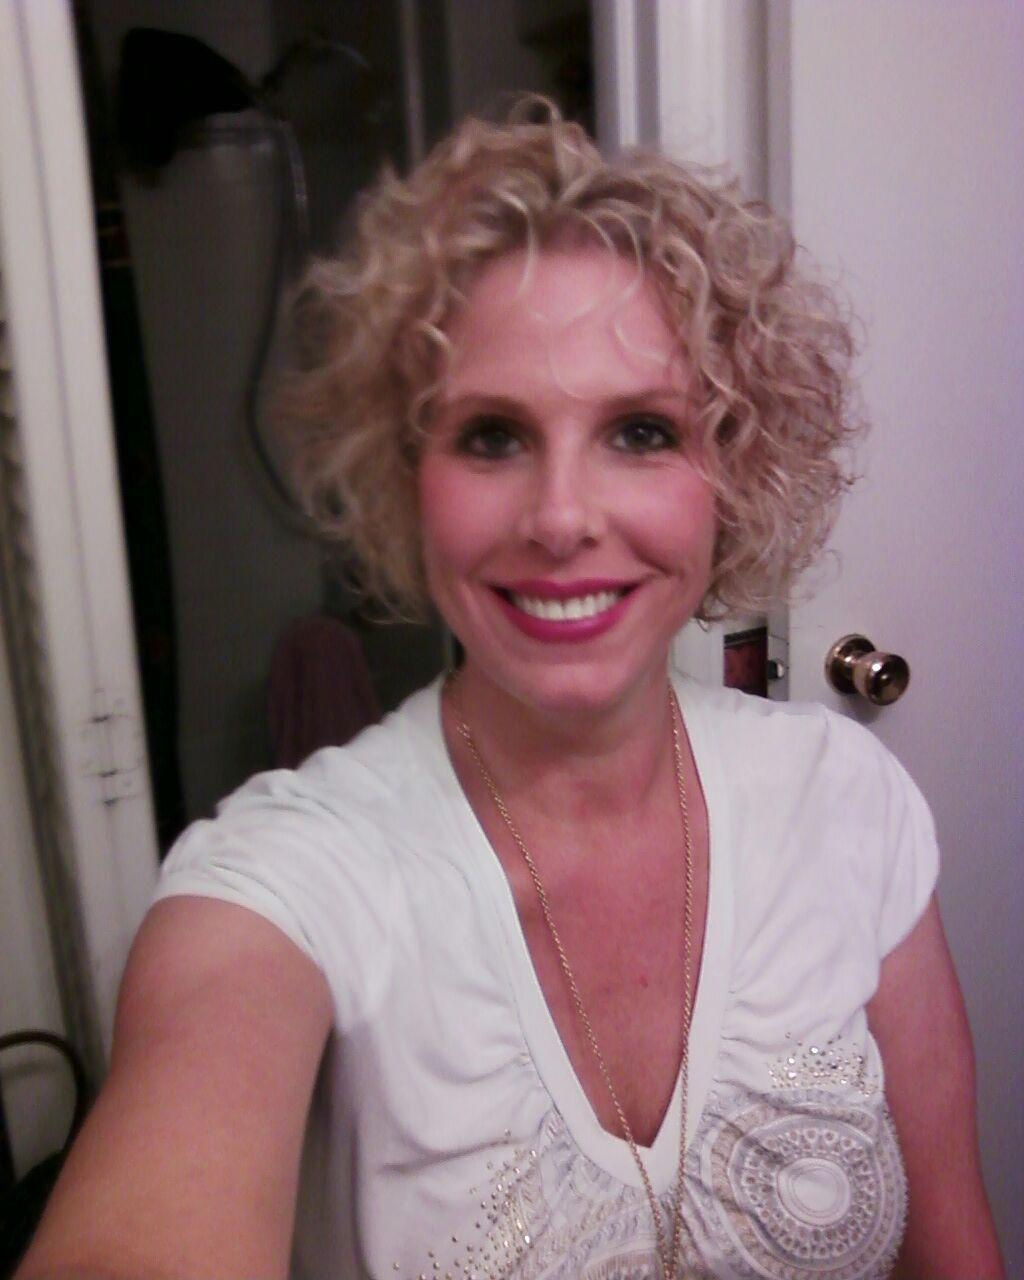 matchmaking services oklahoma city 3 reviews of oklahoma singles they have been nothing but kind and generous  professional services matchmakers photo of oklahoma singles - broken arrow, ok,.